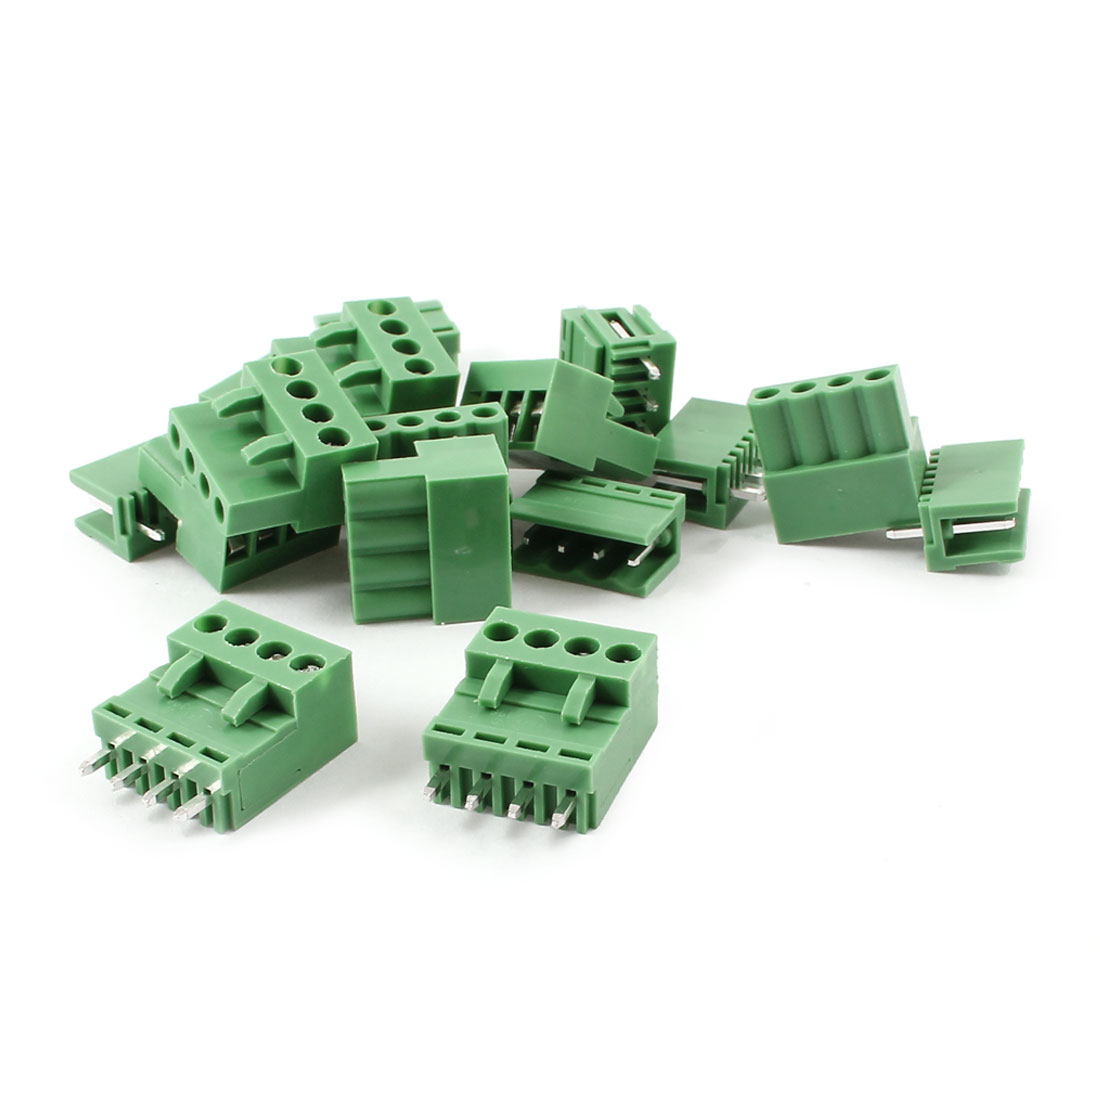 10 Set Green 4 Pin 3.96mm Single Row Screw Terminal Block Straight Connector 300V 10A